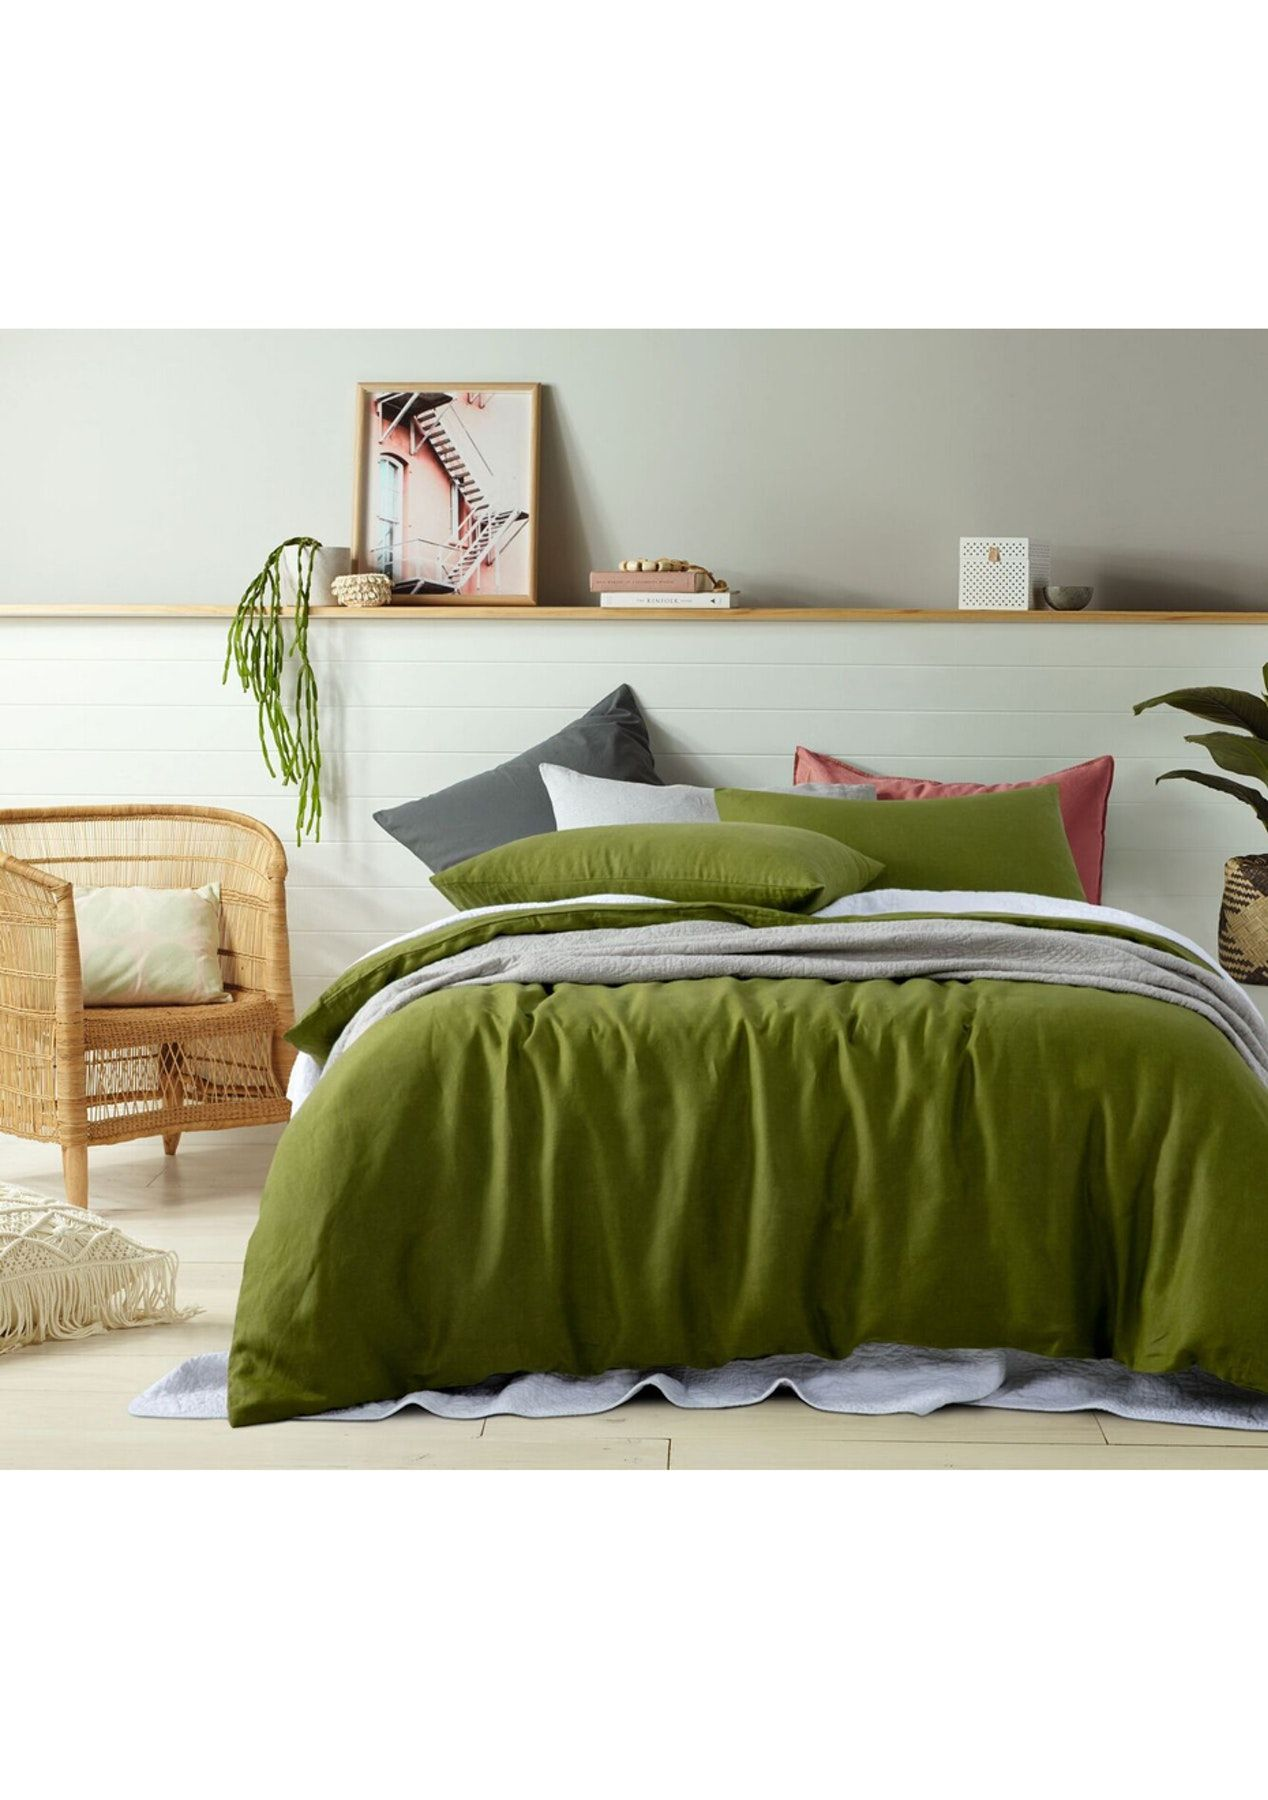 Layer Your Bed With Our Vintage Design 100 Linen Quilt Cover Set This Quilt Cover Set Is A Dream To Sleep In Quilt Cover Sets Quilted Duvet Cover Quilt Cover